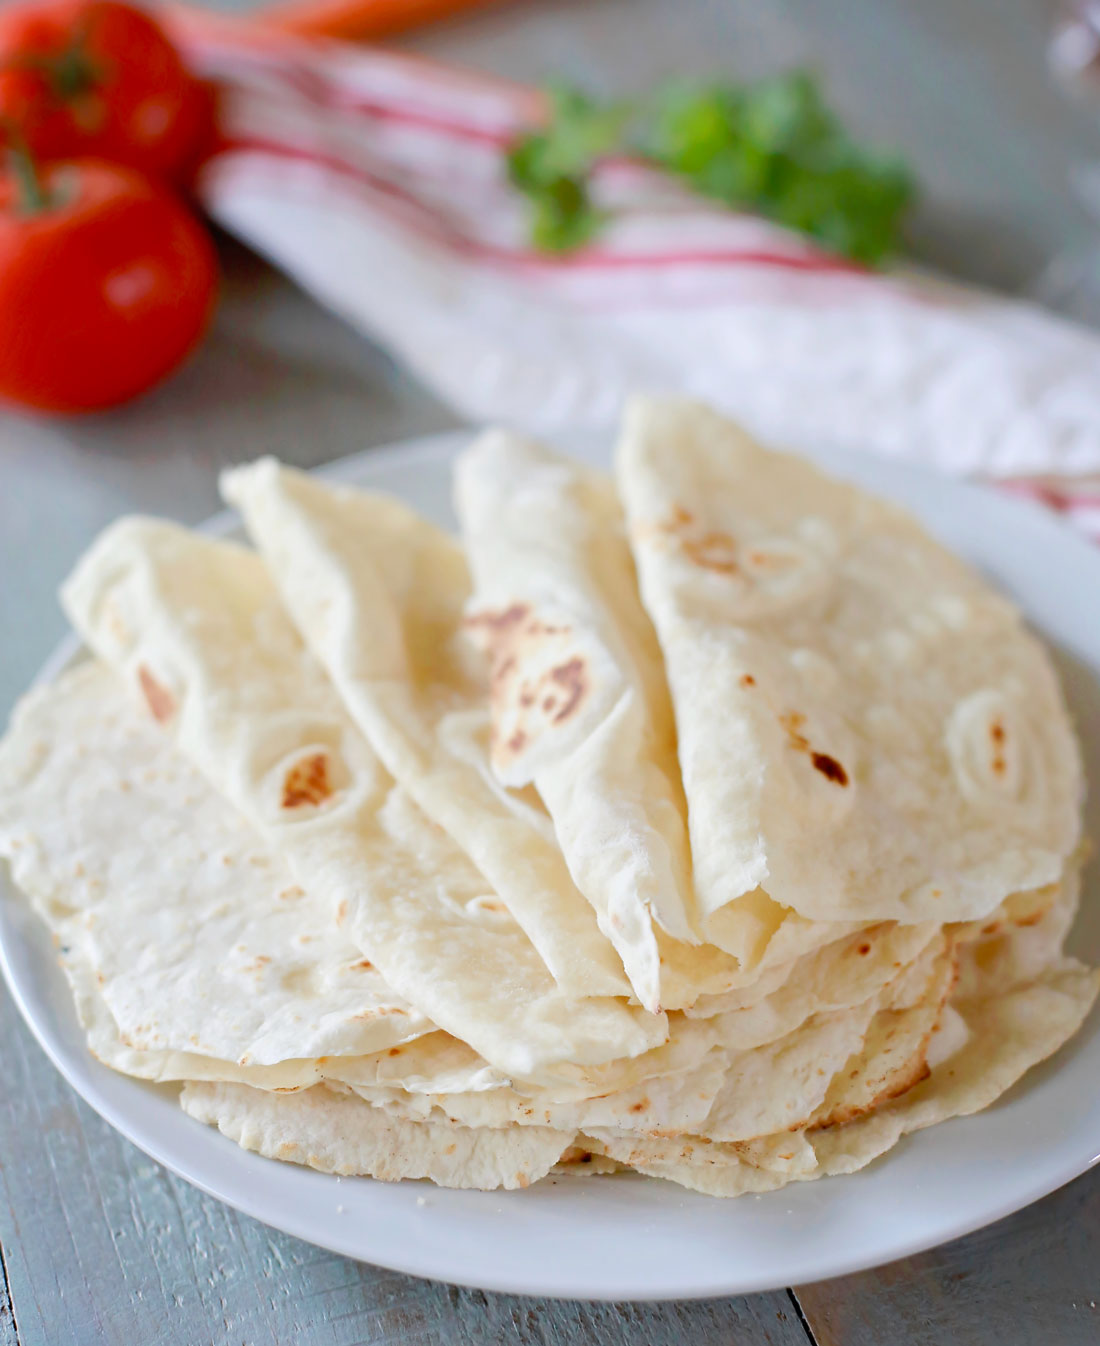 Easy homemade flour tortillas using oil in place of lard for a healthier, yet still soft and delicious flour tortilla from scratch.